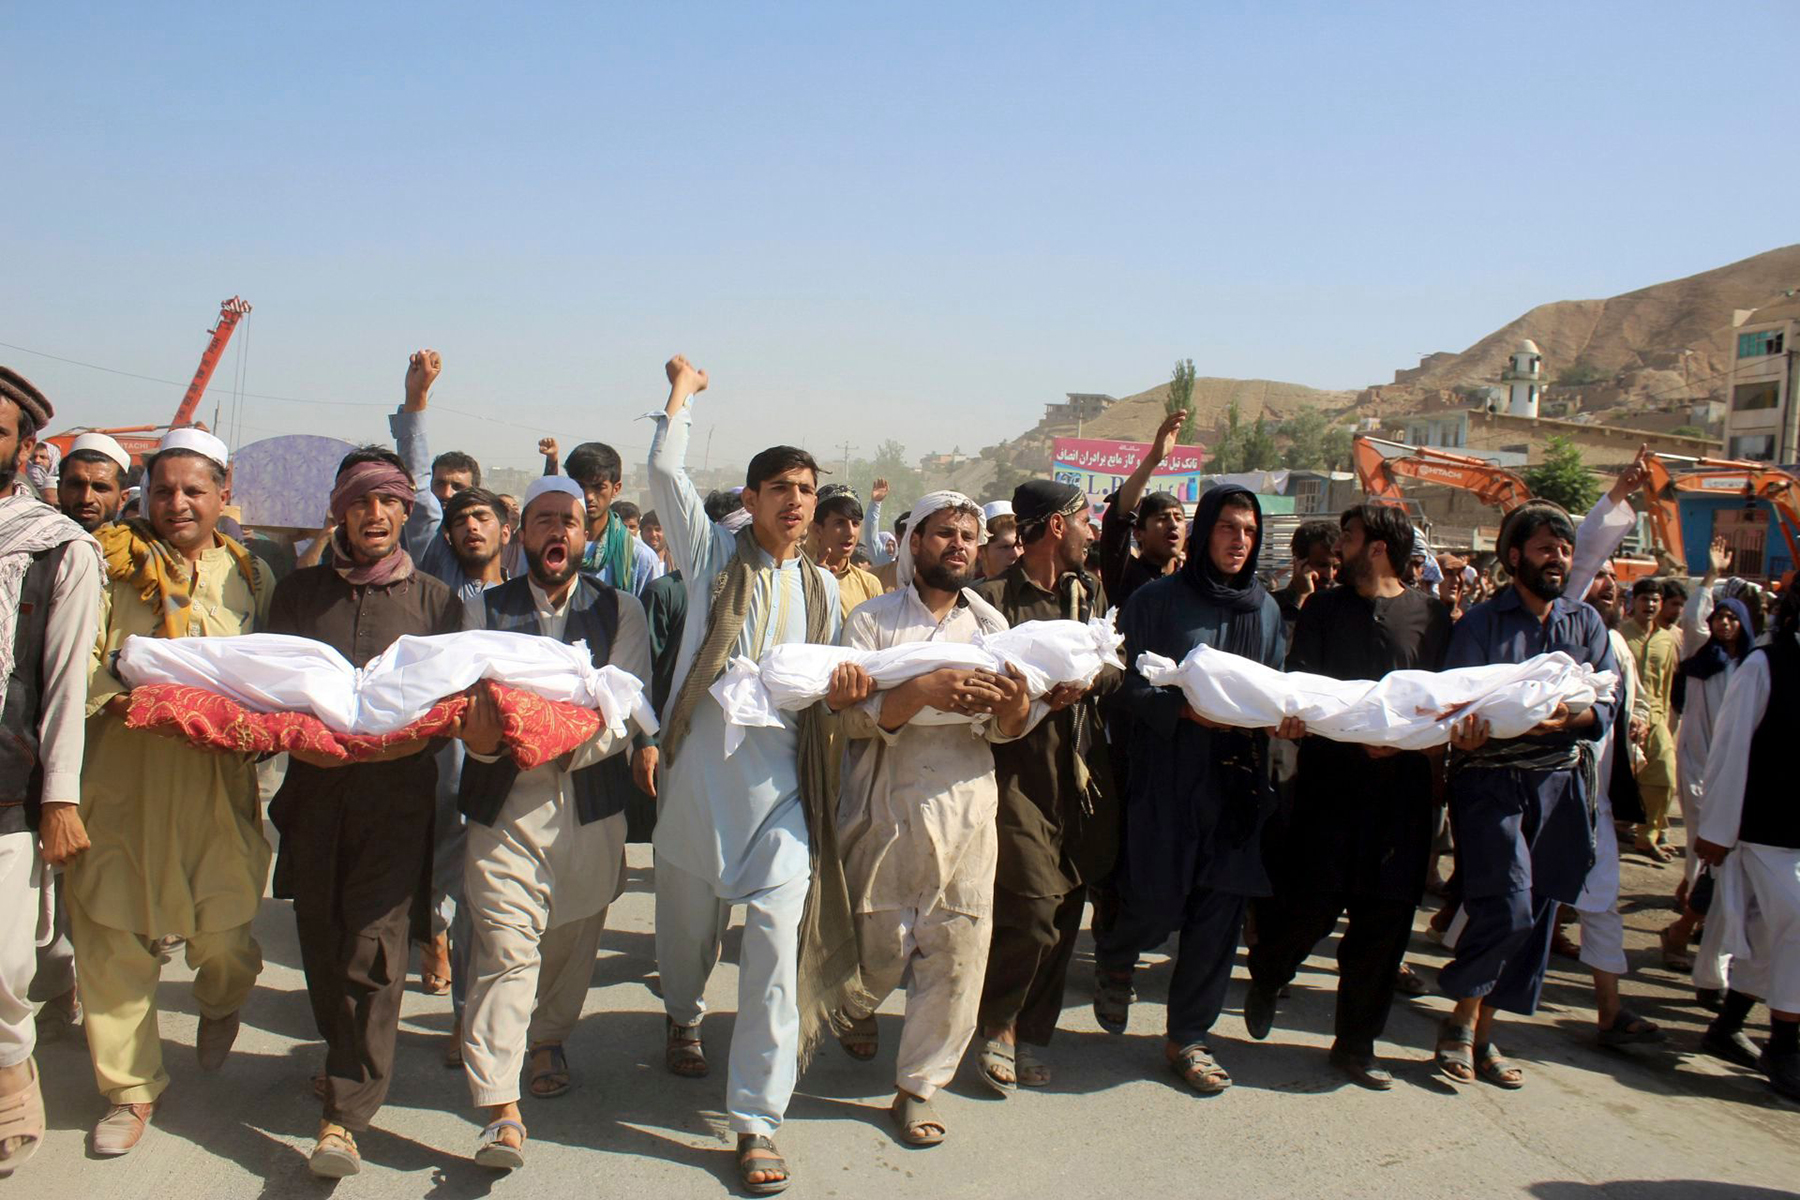 Residents carry bodies killed in an airstrike during a protest in Baghlan province, northern Afghanistan, Tuesday, July 9, 2019. Even as an All-Afghan conference that brought Afghanistan's warring sides together was ending, the airstrike killed seven people, six of them children.